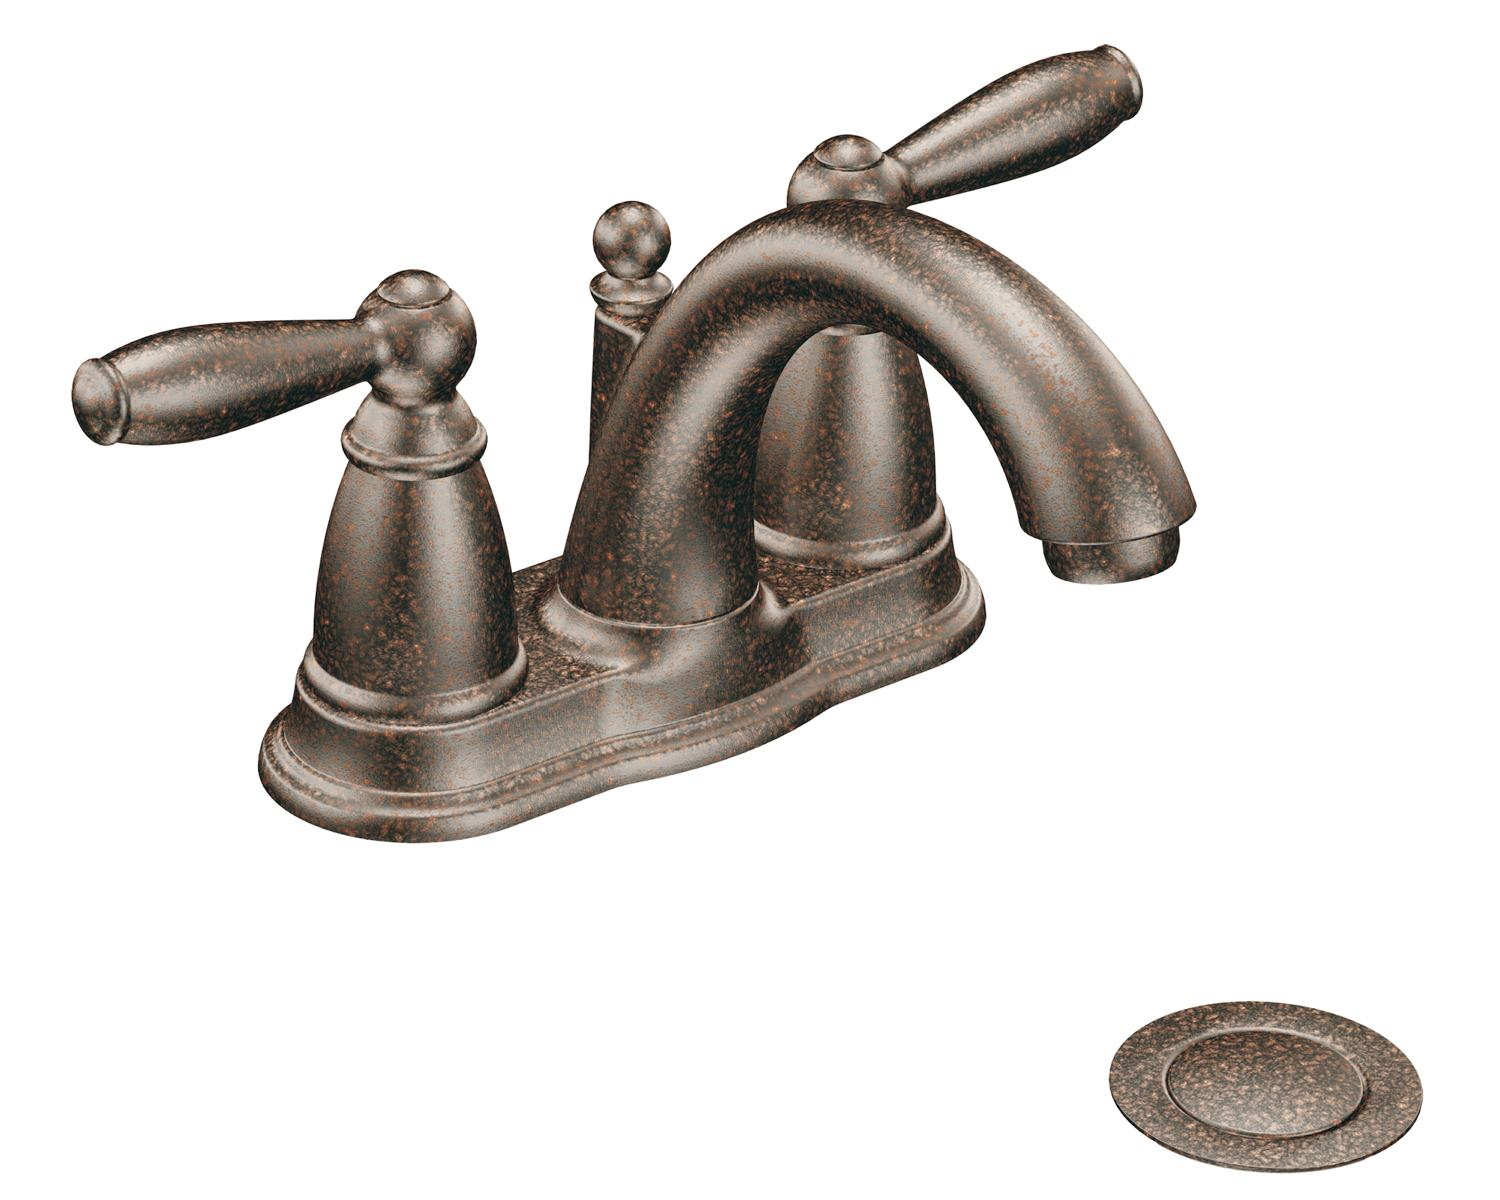 Moen 6610orb brantford 2 handle lavatory faucet with drain for Pictures of bathroom faucets